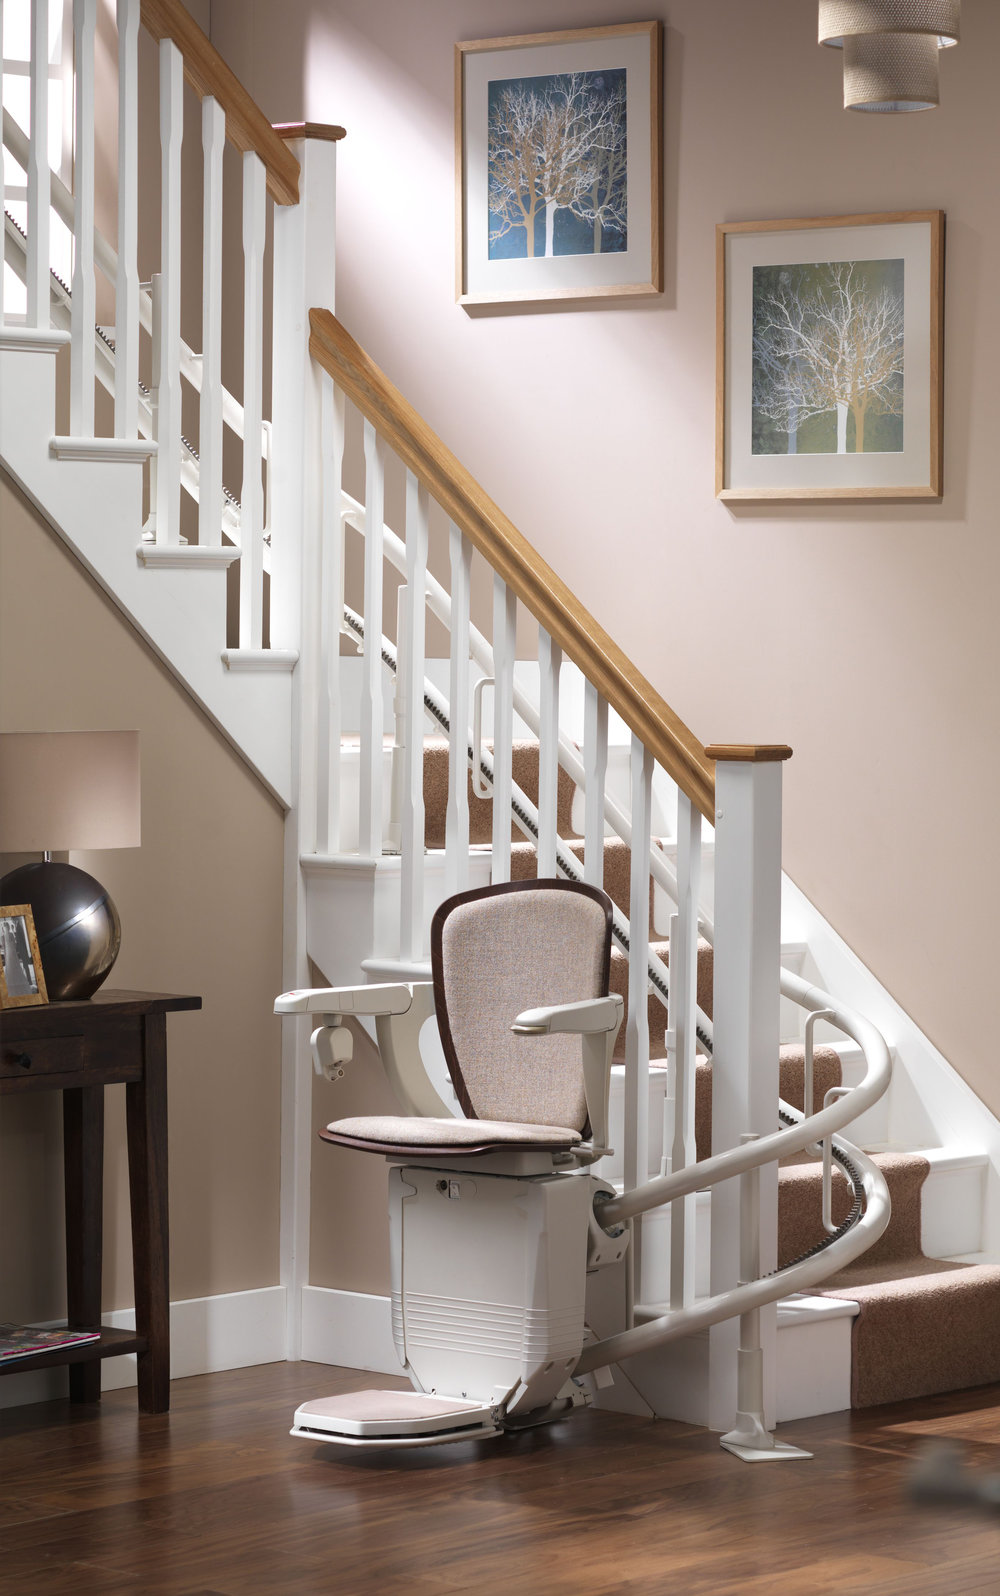 Stannah Starla Stairlift Seat with Wood Trim